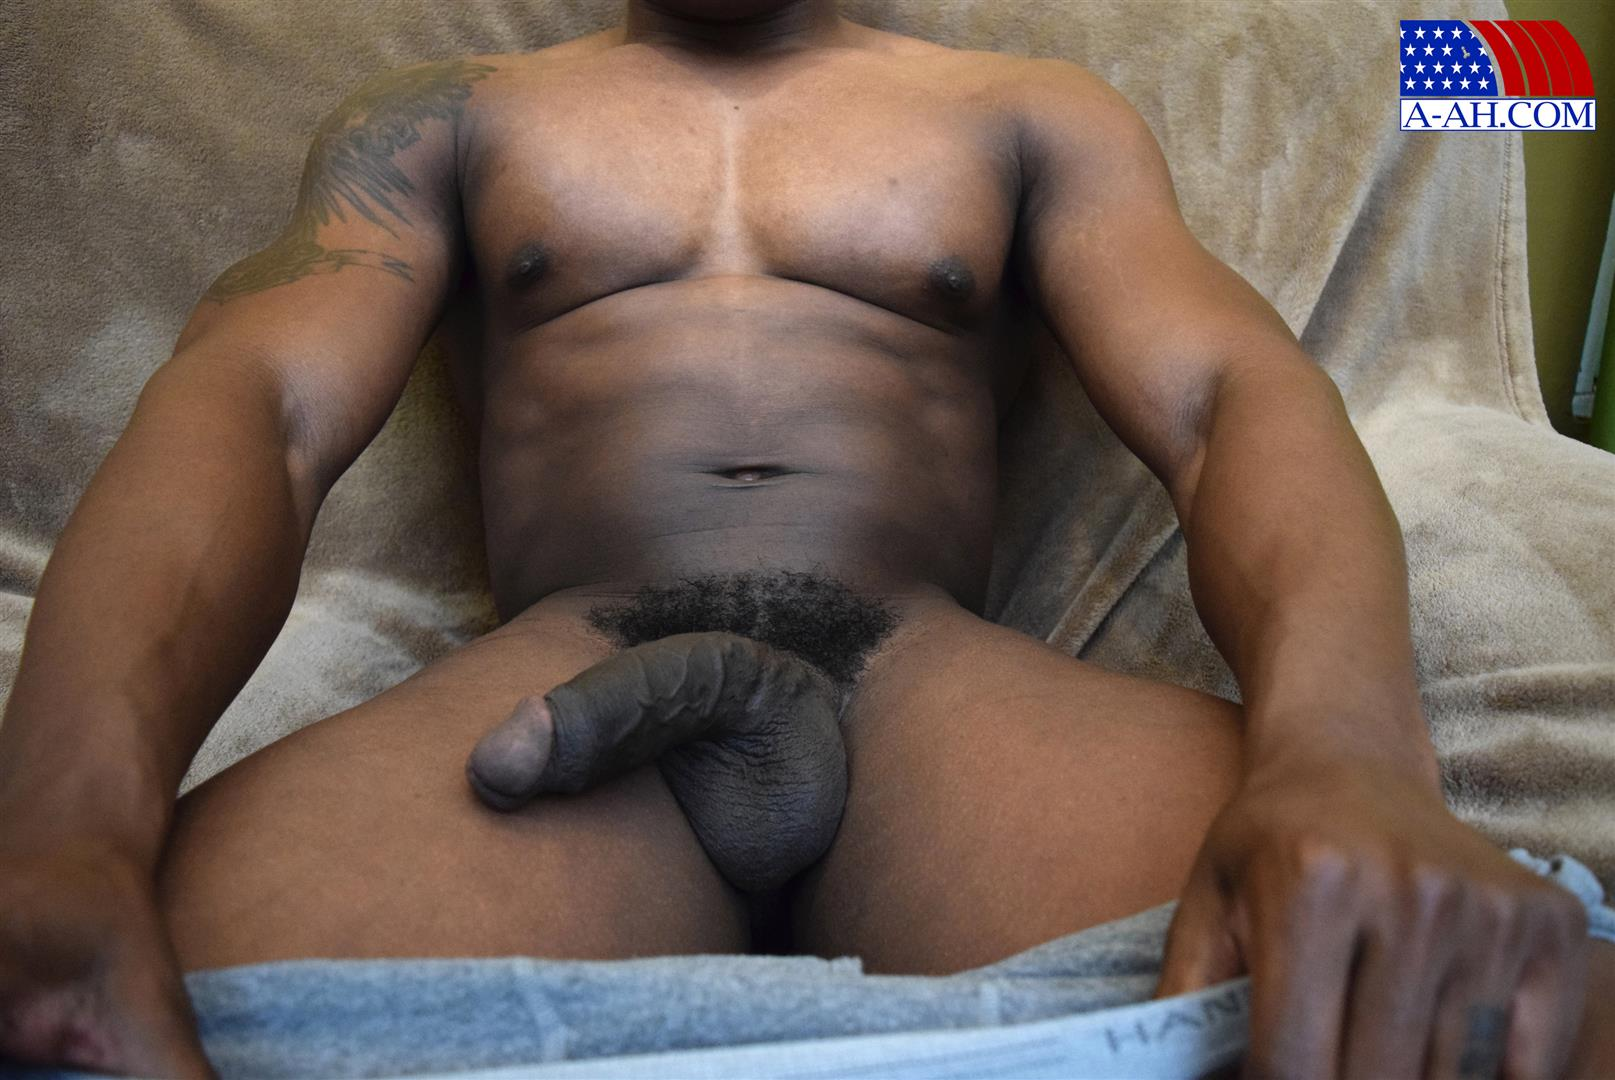 Black Cock Jerk Porn - Click here to download this full length Navy hunk jerking off his big black  cock and hundreds more amateur gay military porn videos at All American  Heroes.